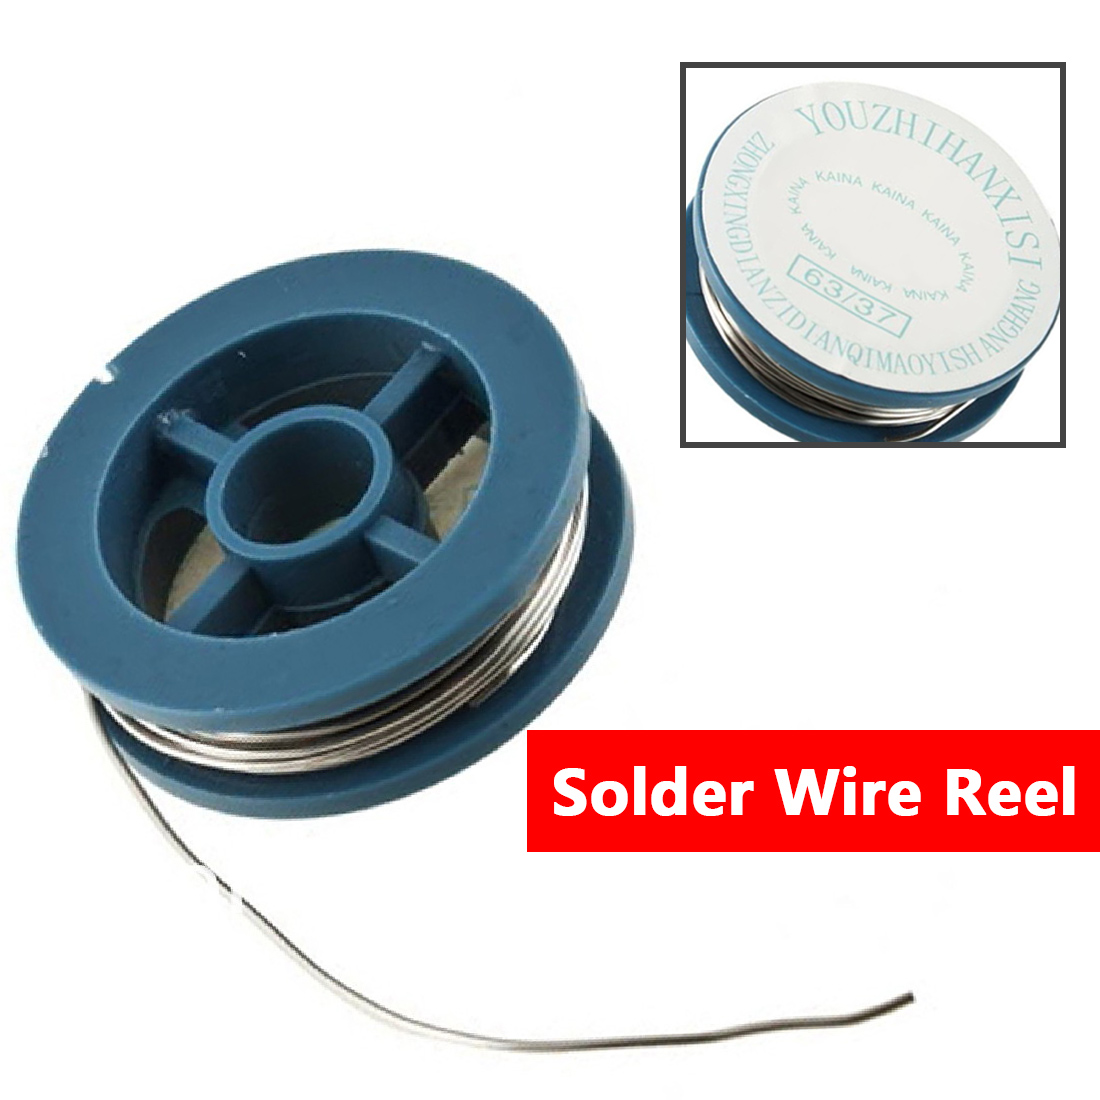 Best Tin 0.8mm Rosin Core Tin/Lead 0.8mm Rosin Roll Flux Solder Wire Reel parking barrier gate system electric up and down boom barrier gate for vehicle access restrictions or safety checks